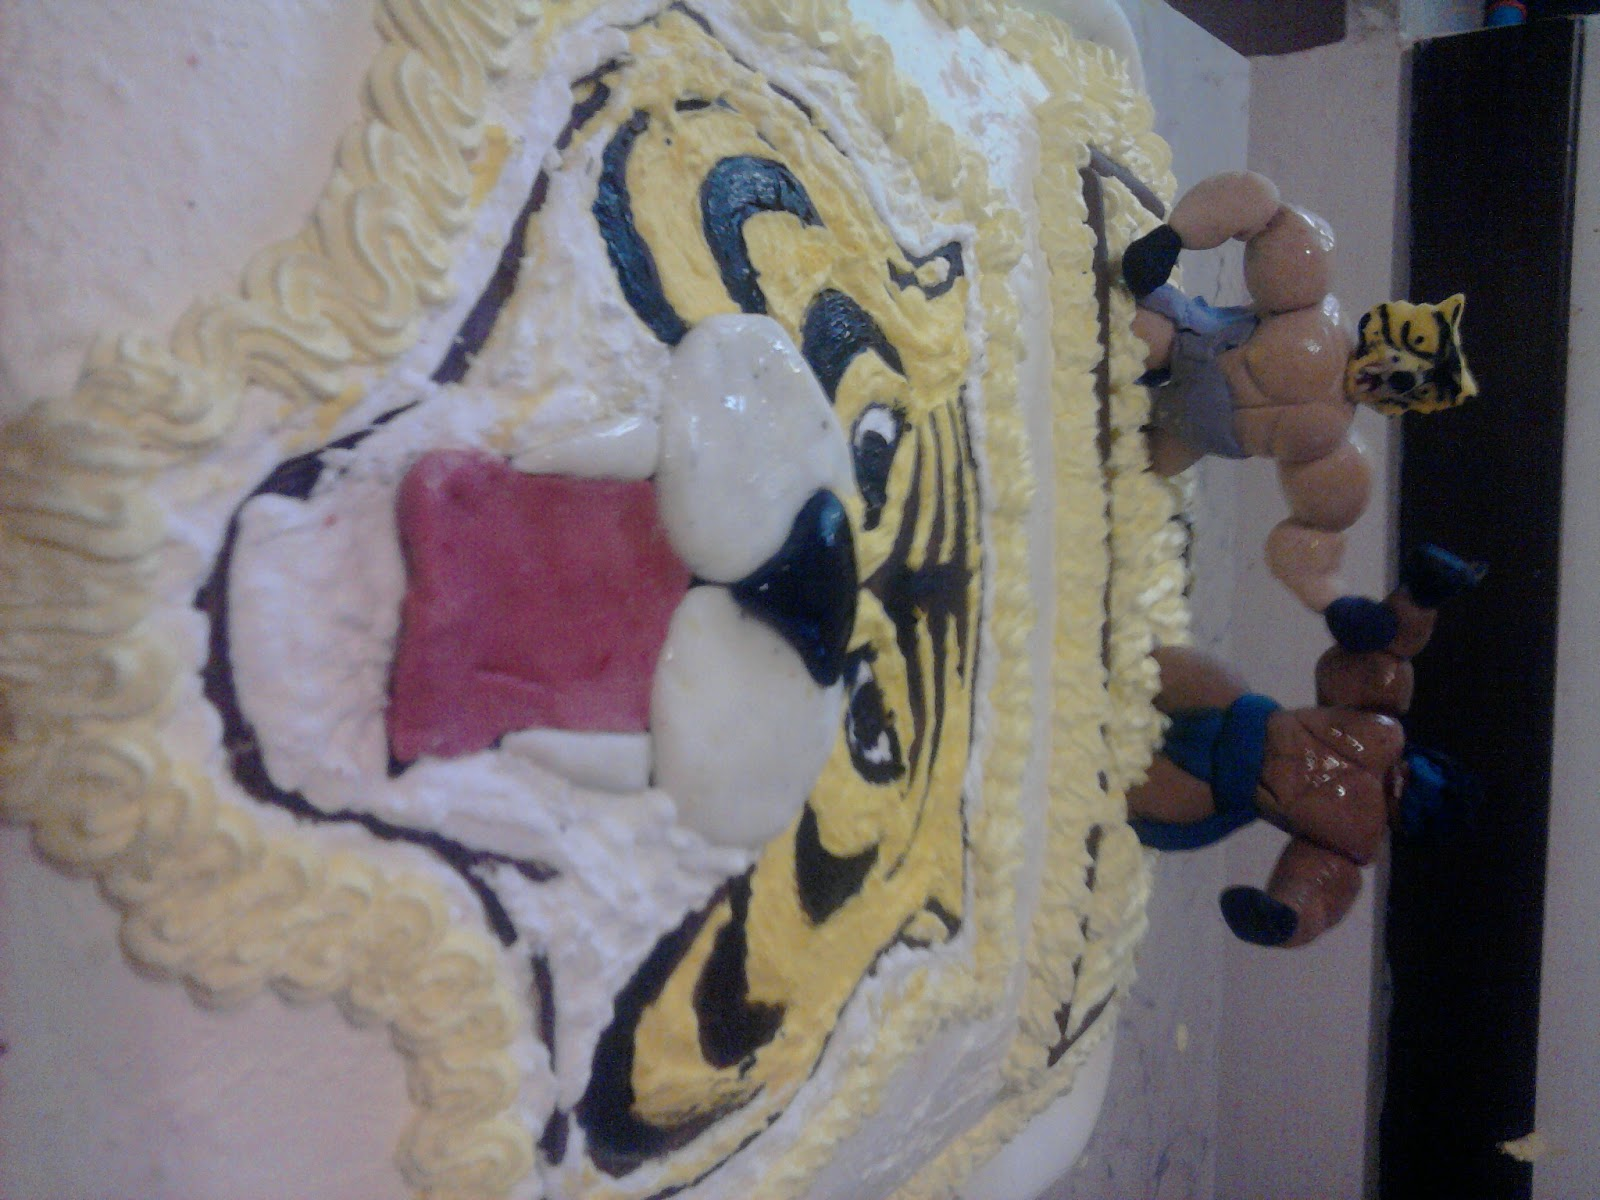 My sweet house torta uomo tigre